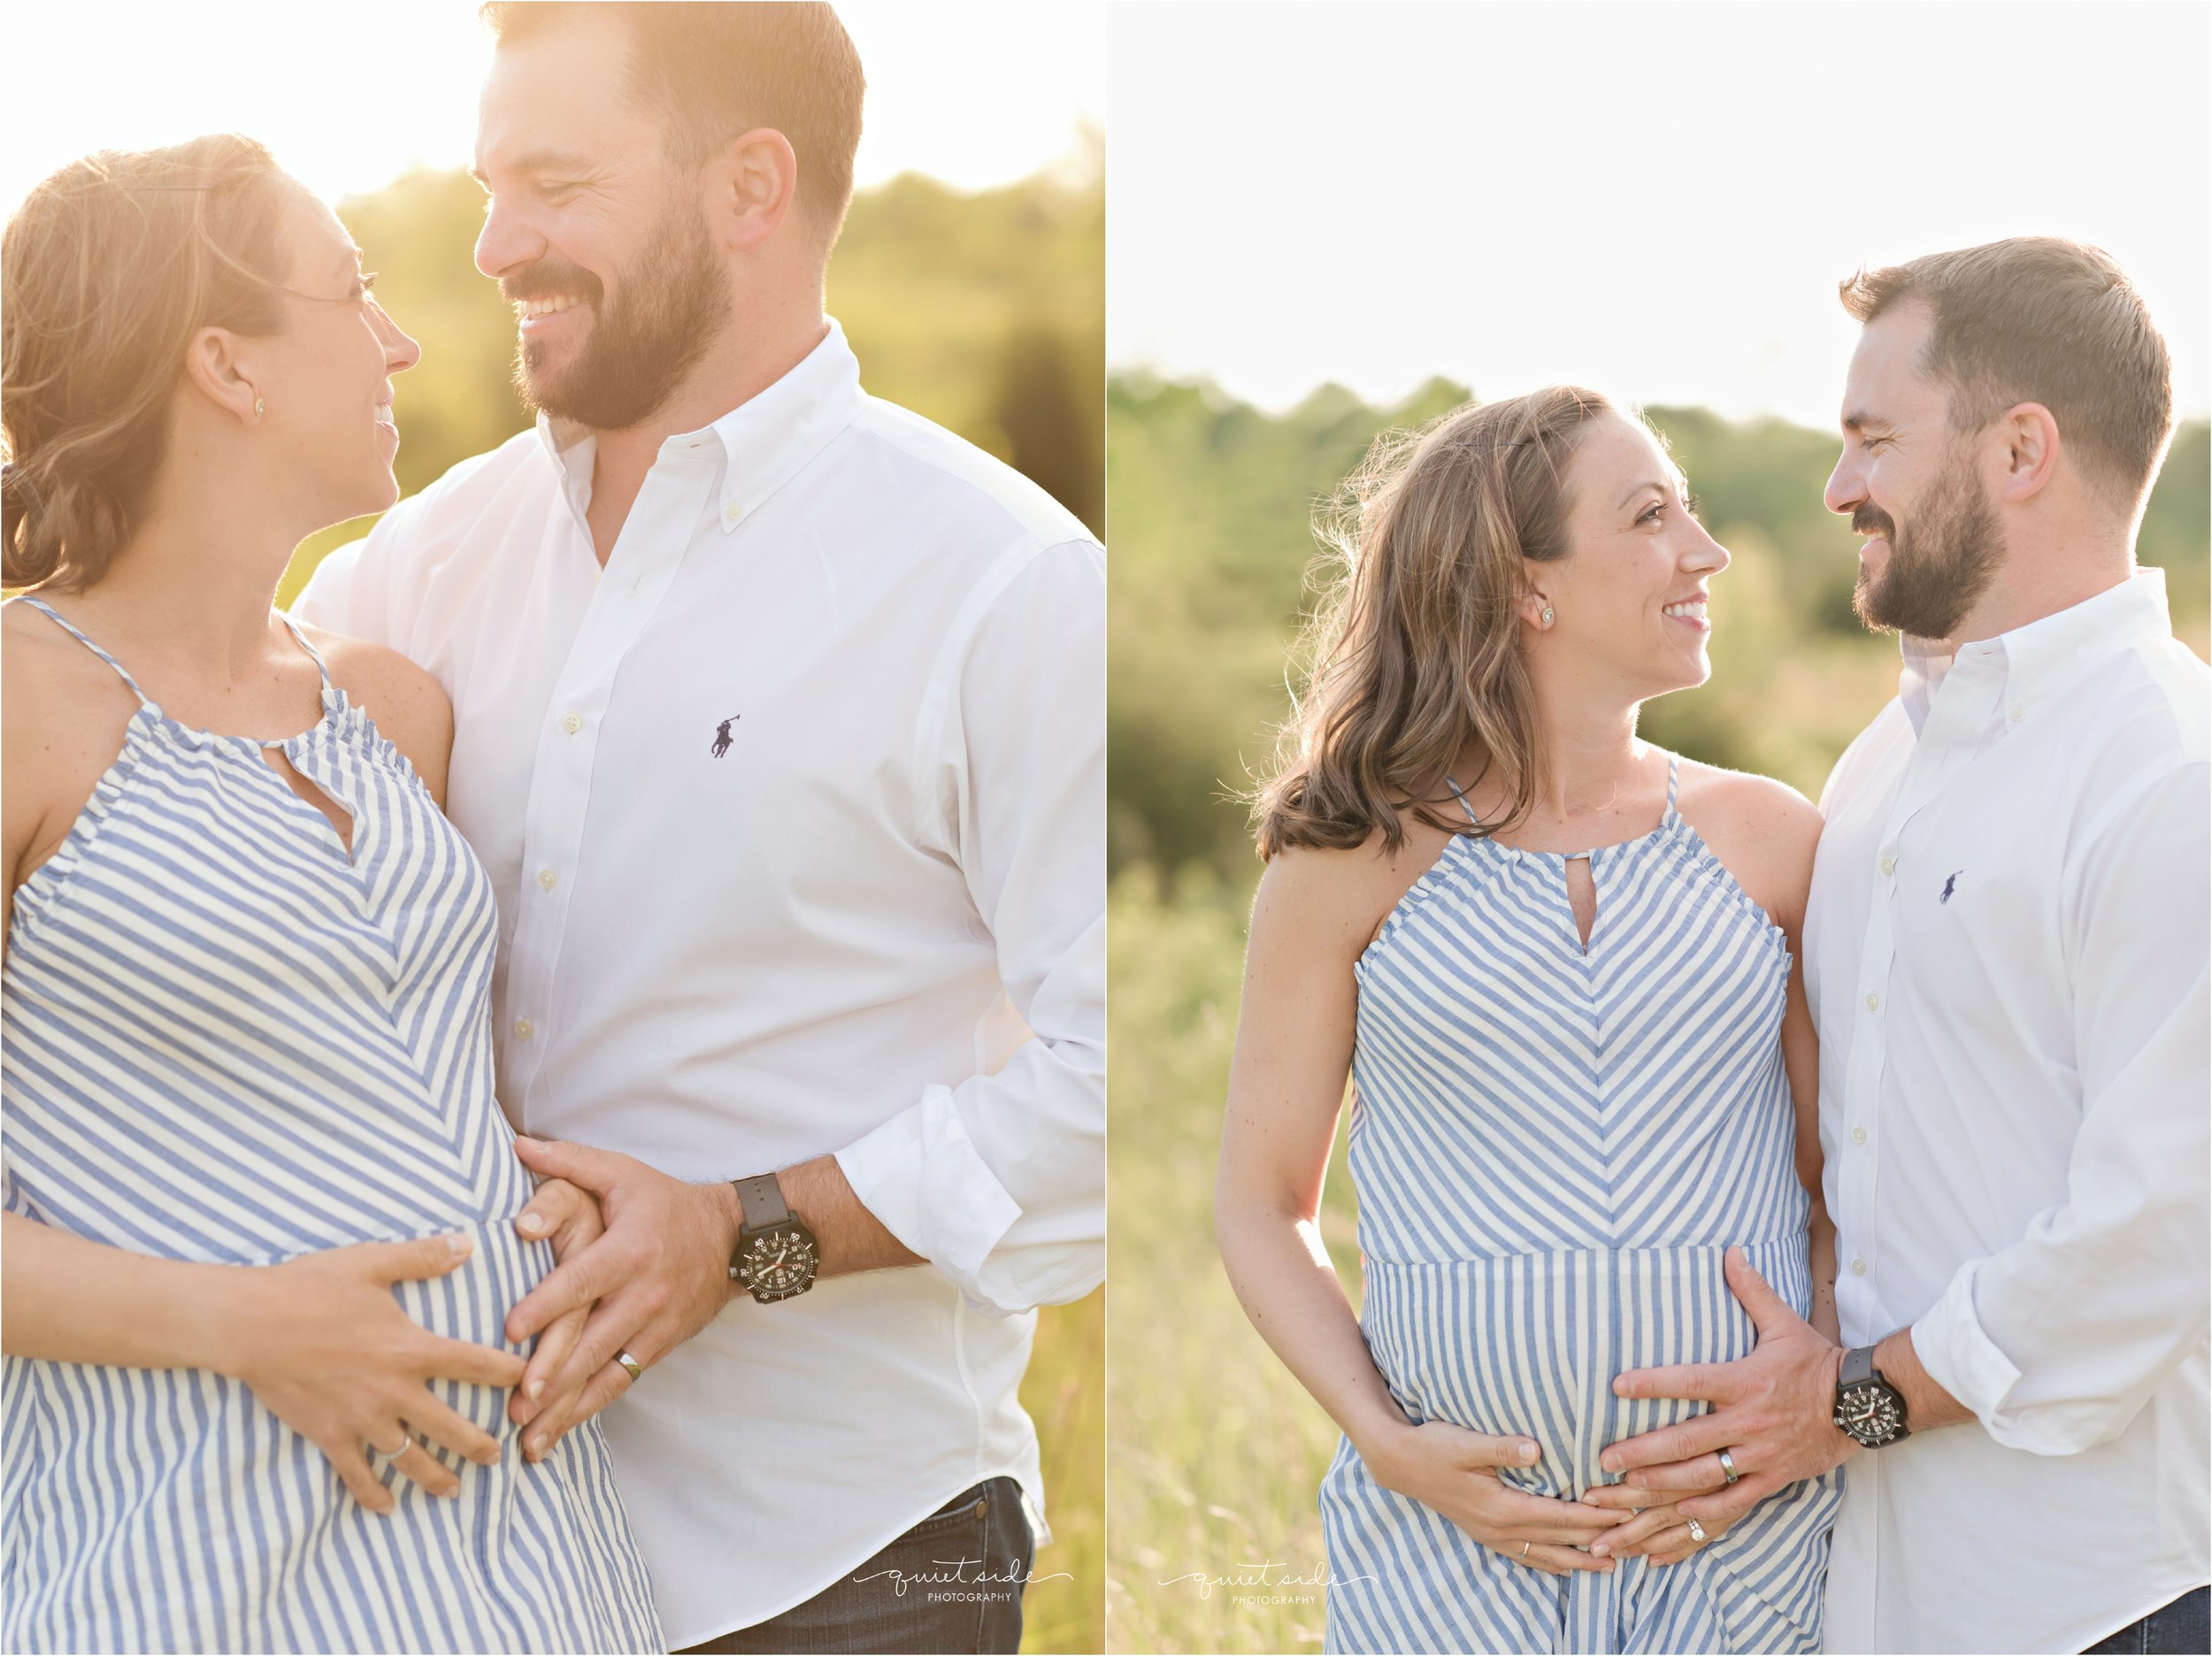 NorthernVirginia-Maternity-Sunset-Outdoor-GoldenHour-QuietSidePhotography-2017-10-04_0001.jpg